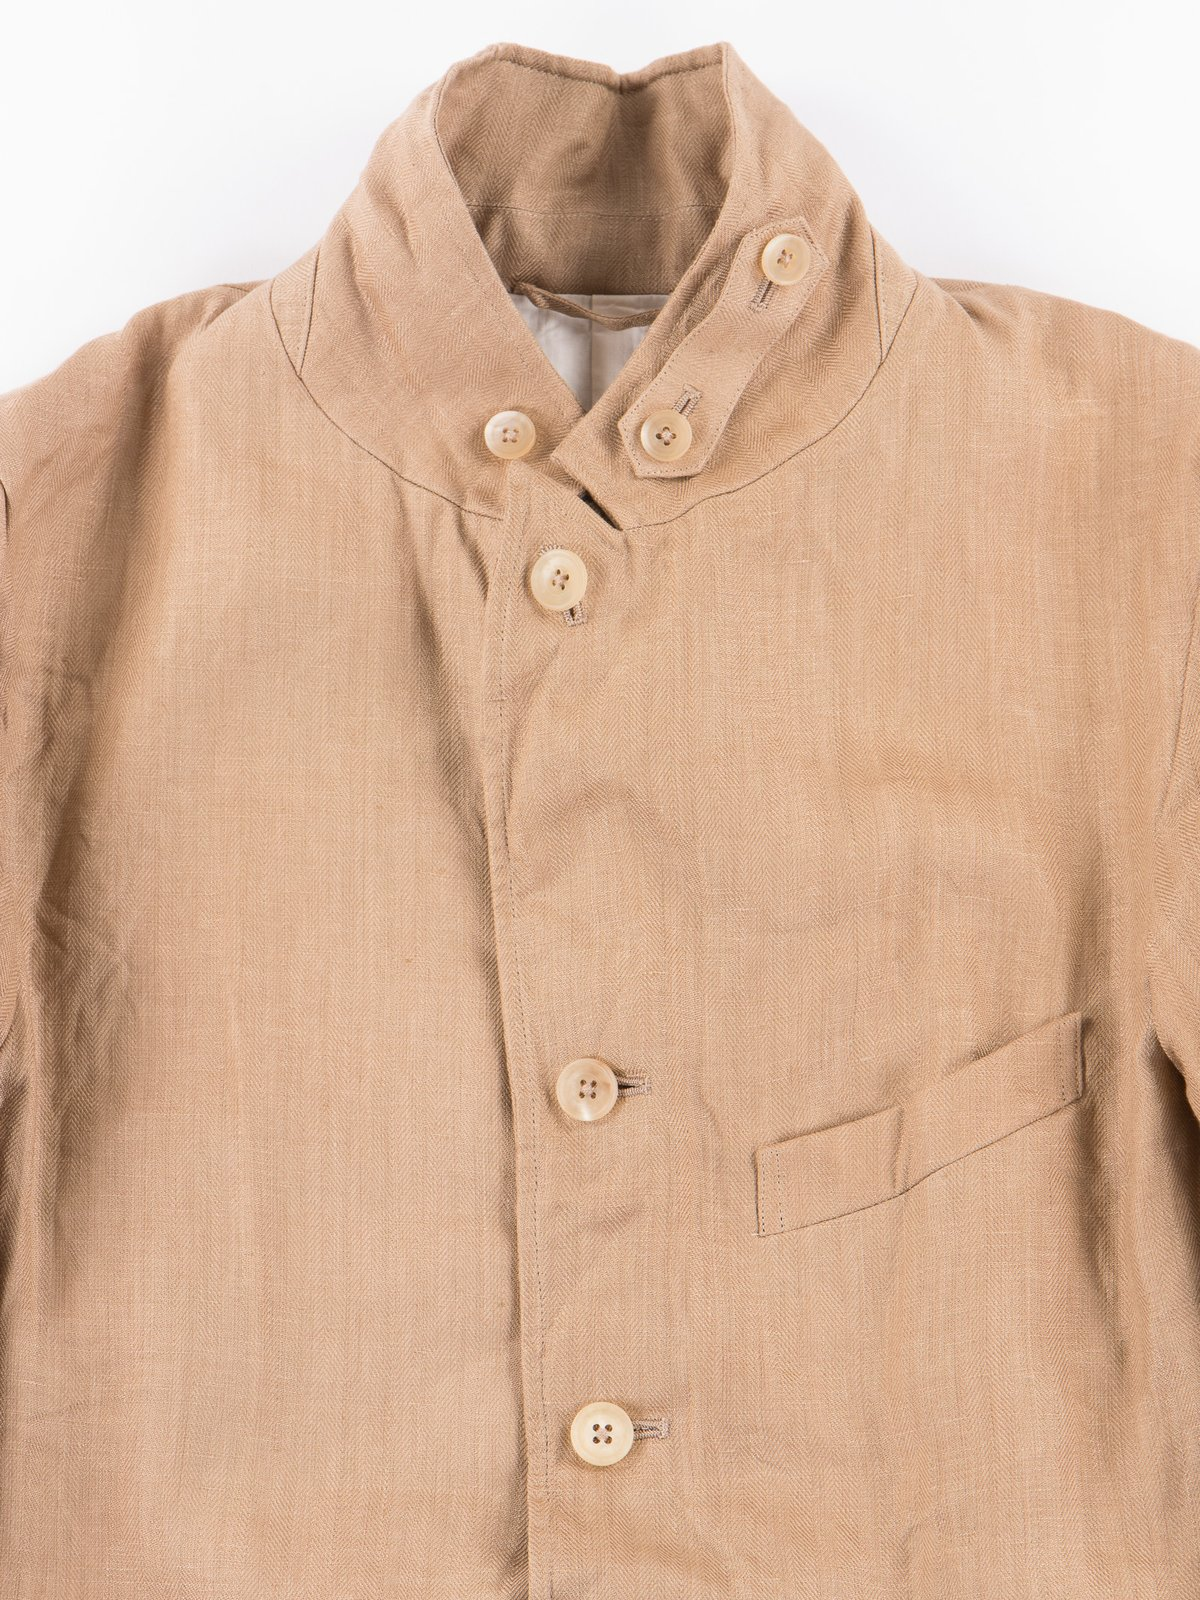 Beige Linen Old Potter Jacket - Image 4